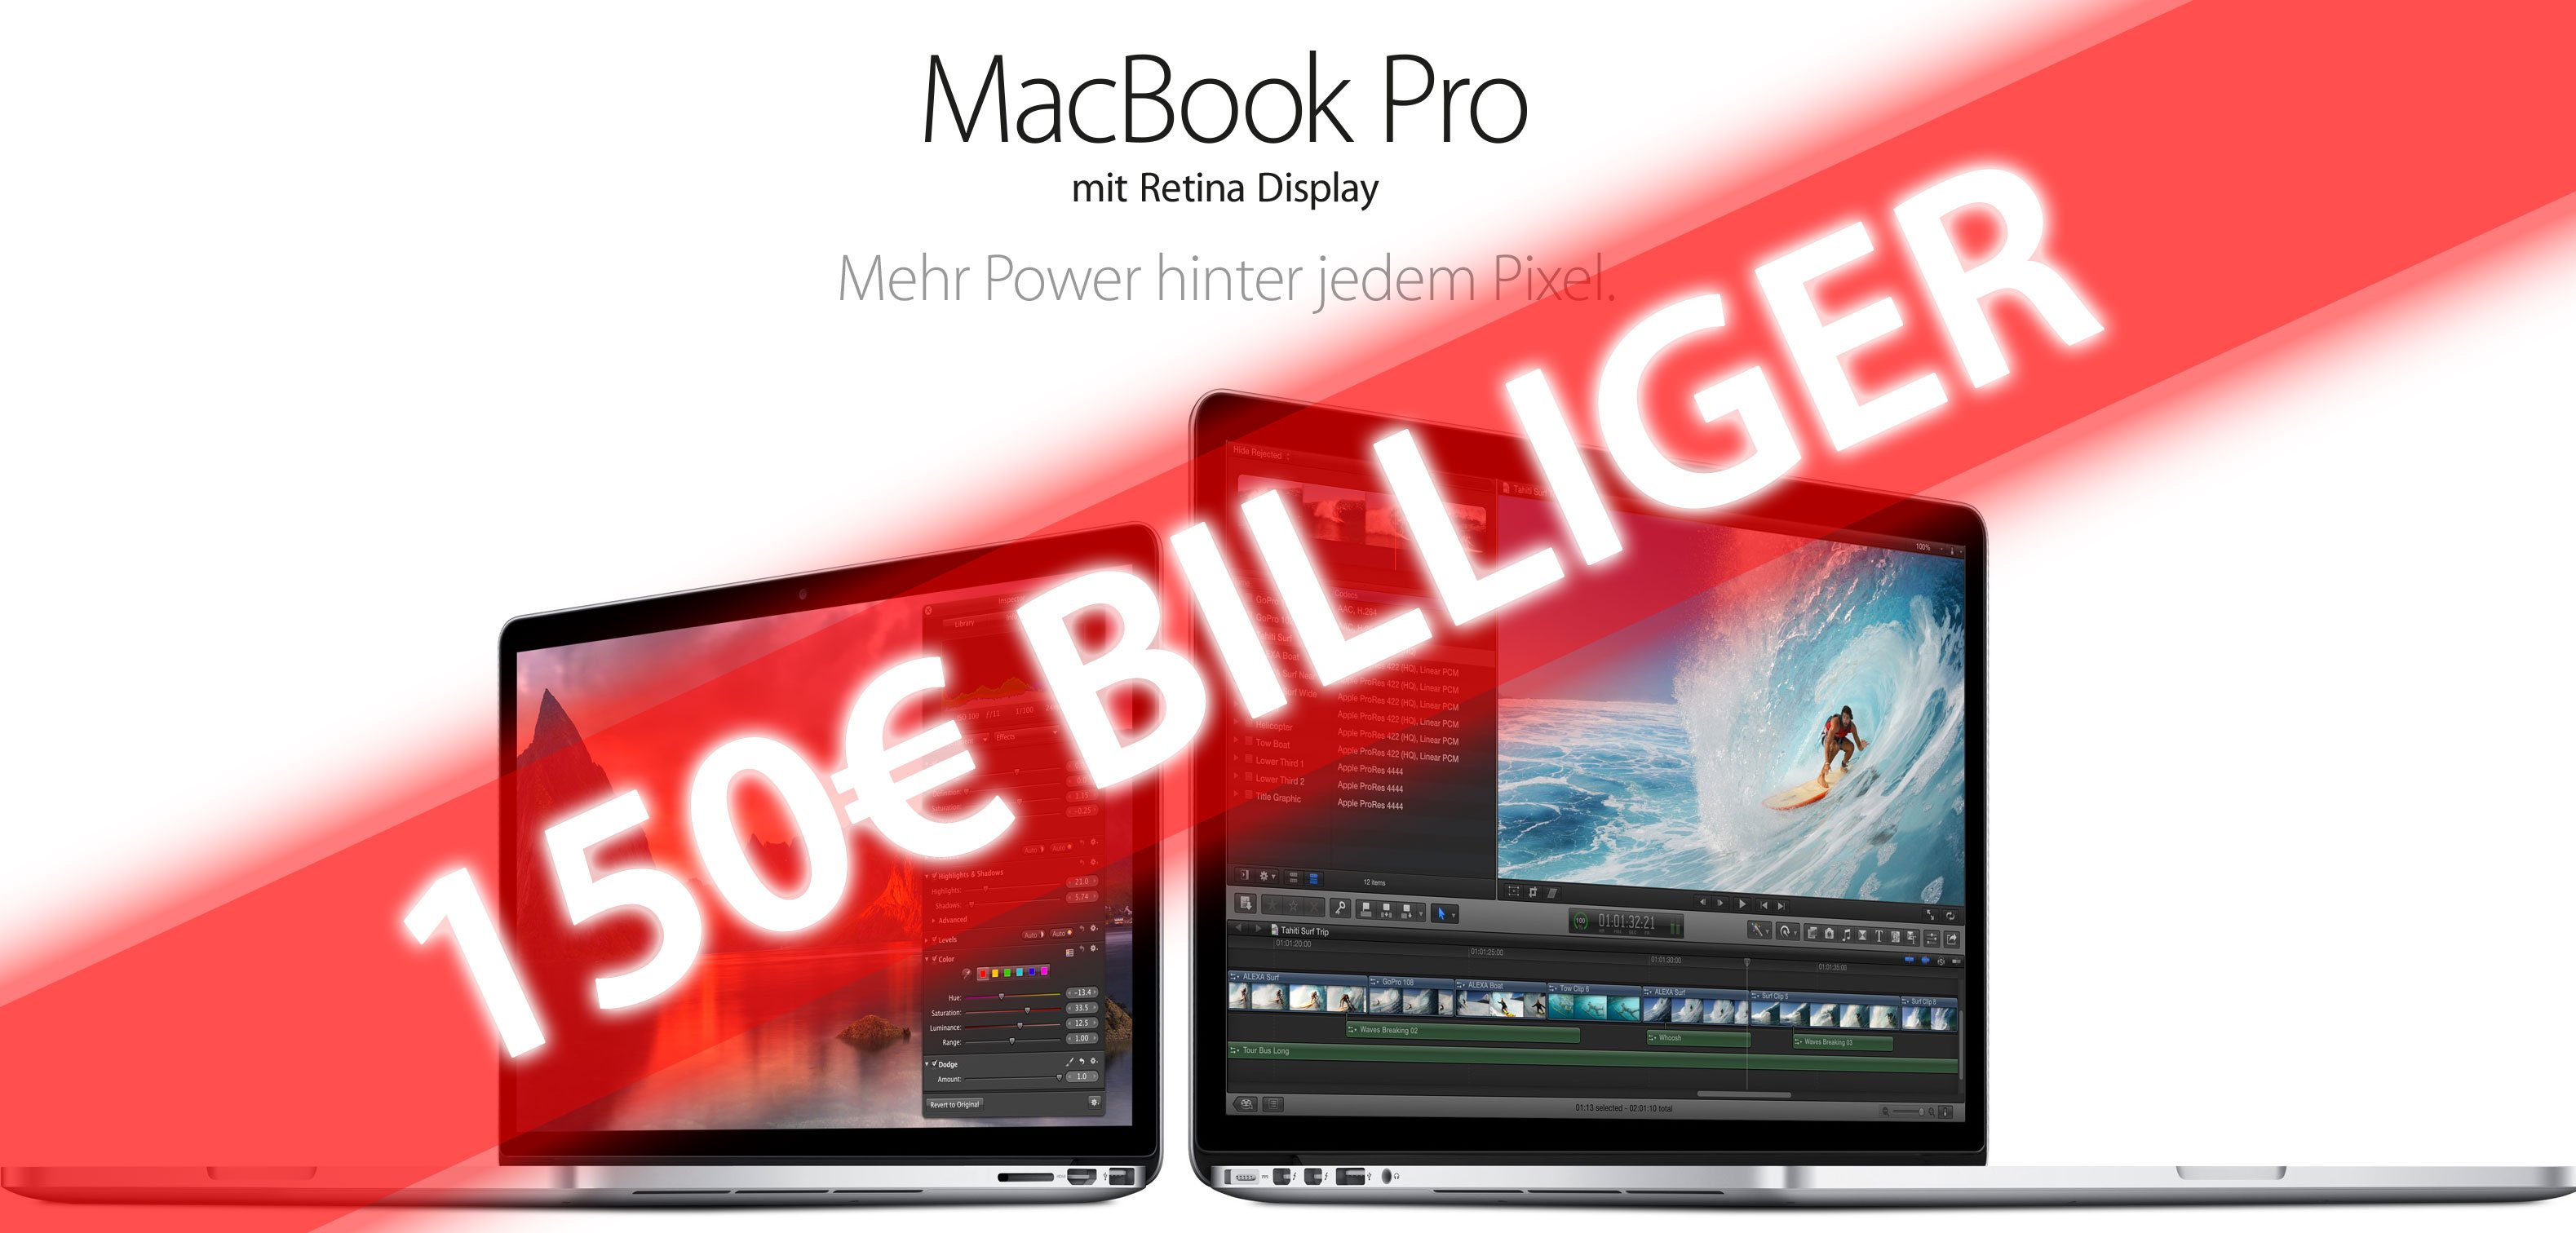 Neues MacBook Pro 150€ billiger 1